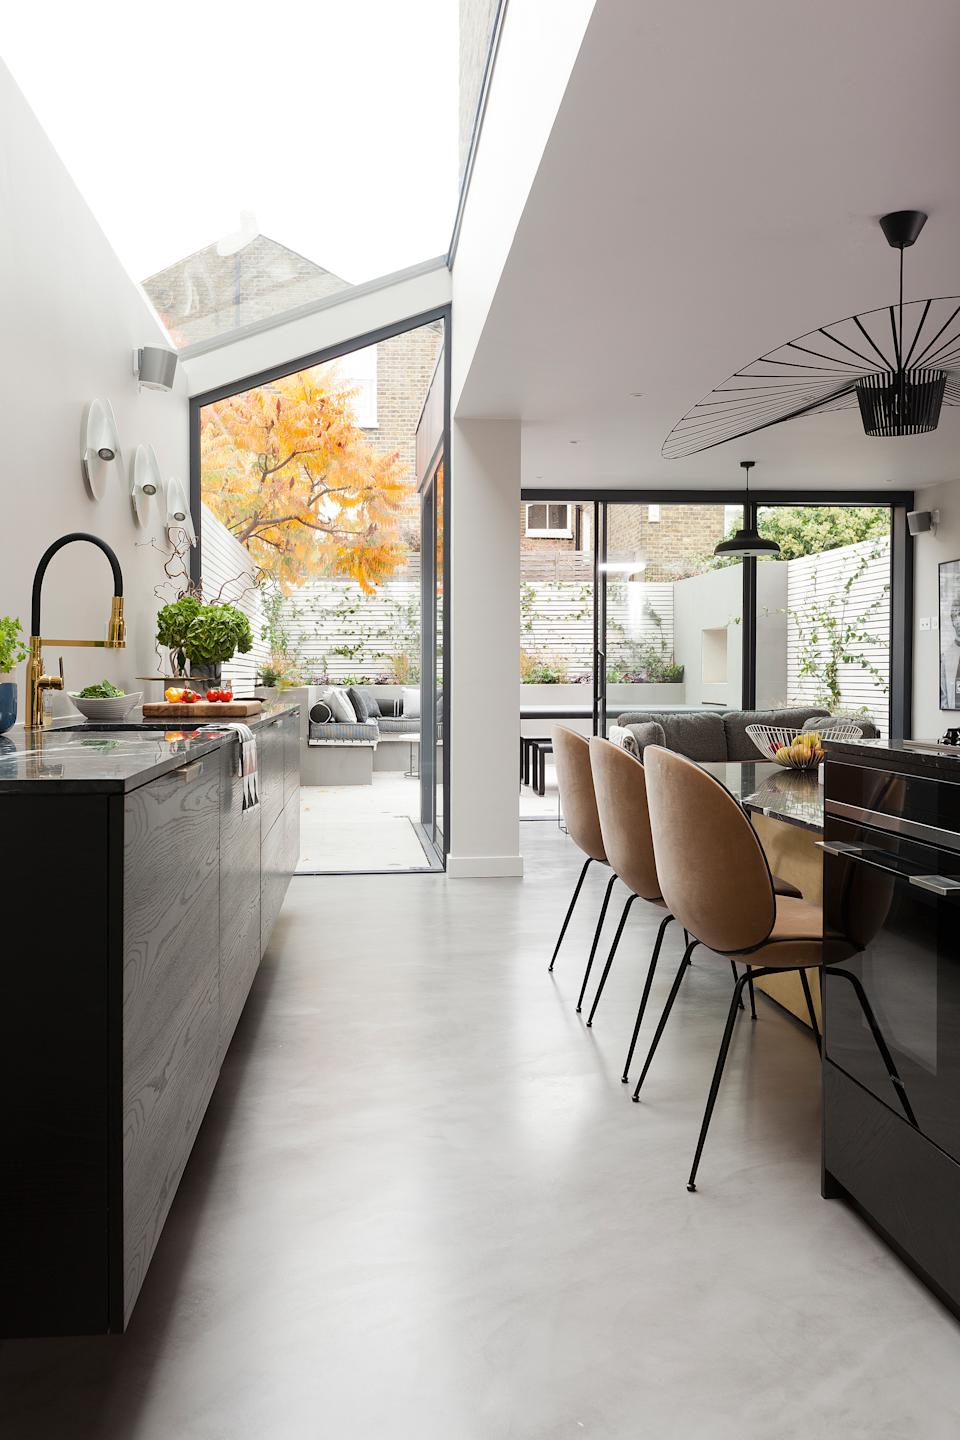 A kitchen with a glazed sloping roof and sliding doors leading to the garden